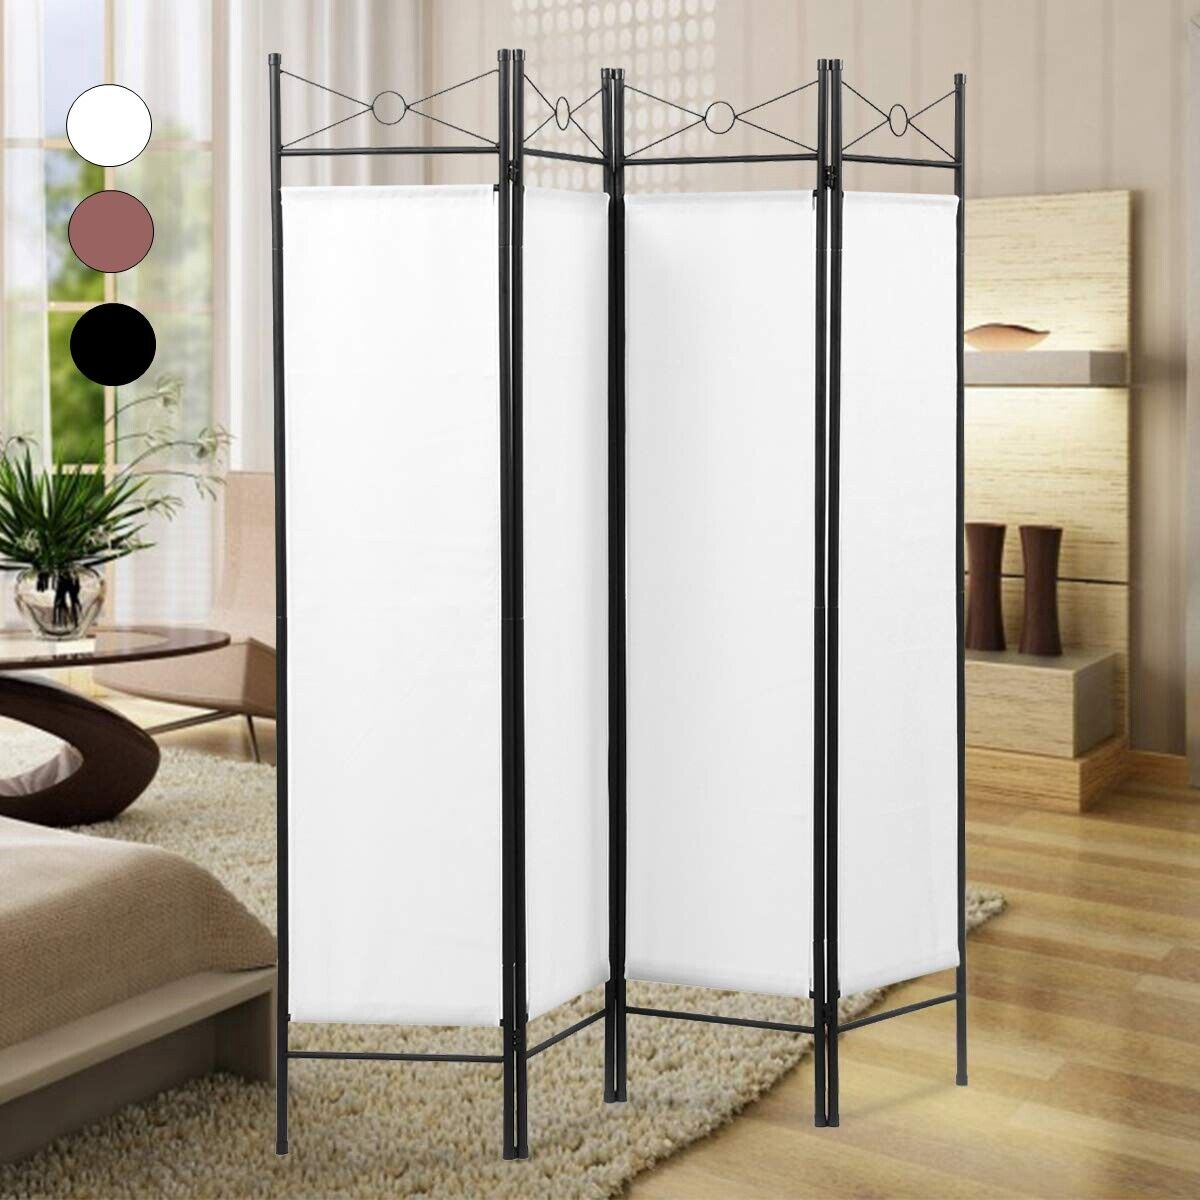 6ft 4 panel room divider foldable privacy